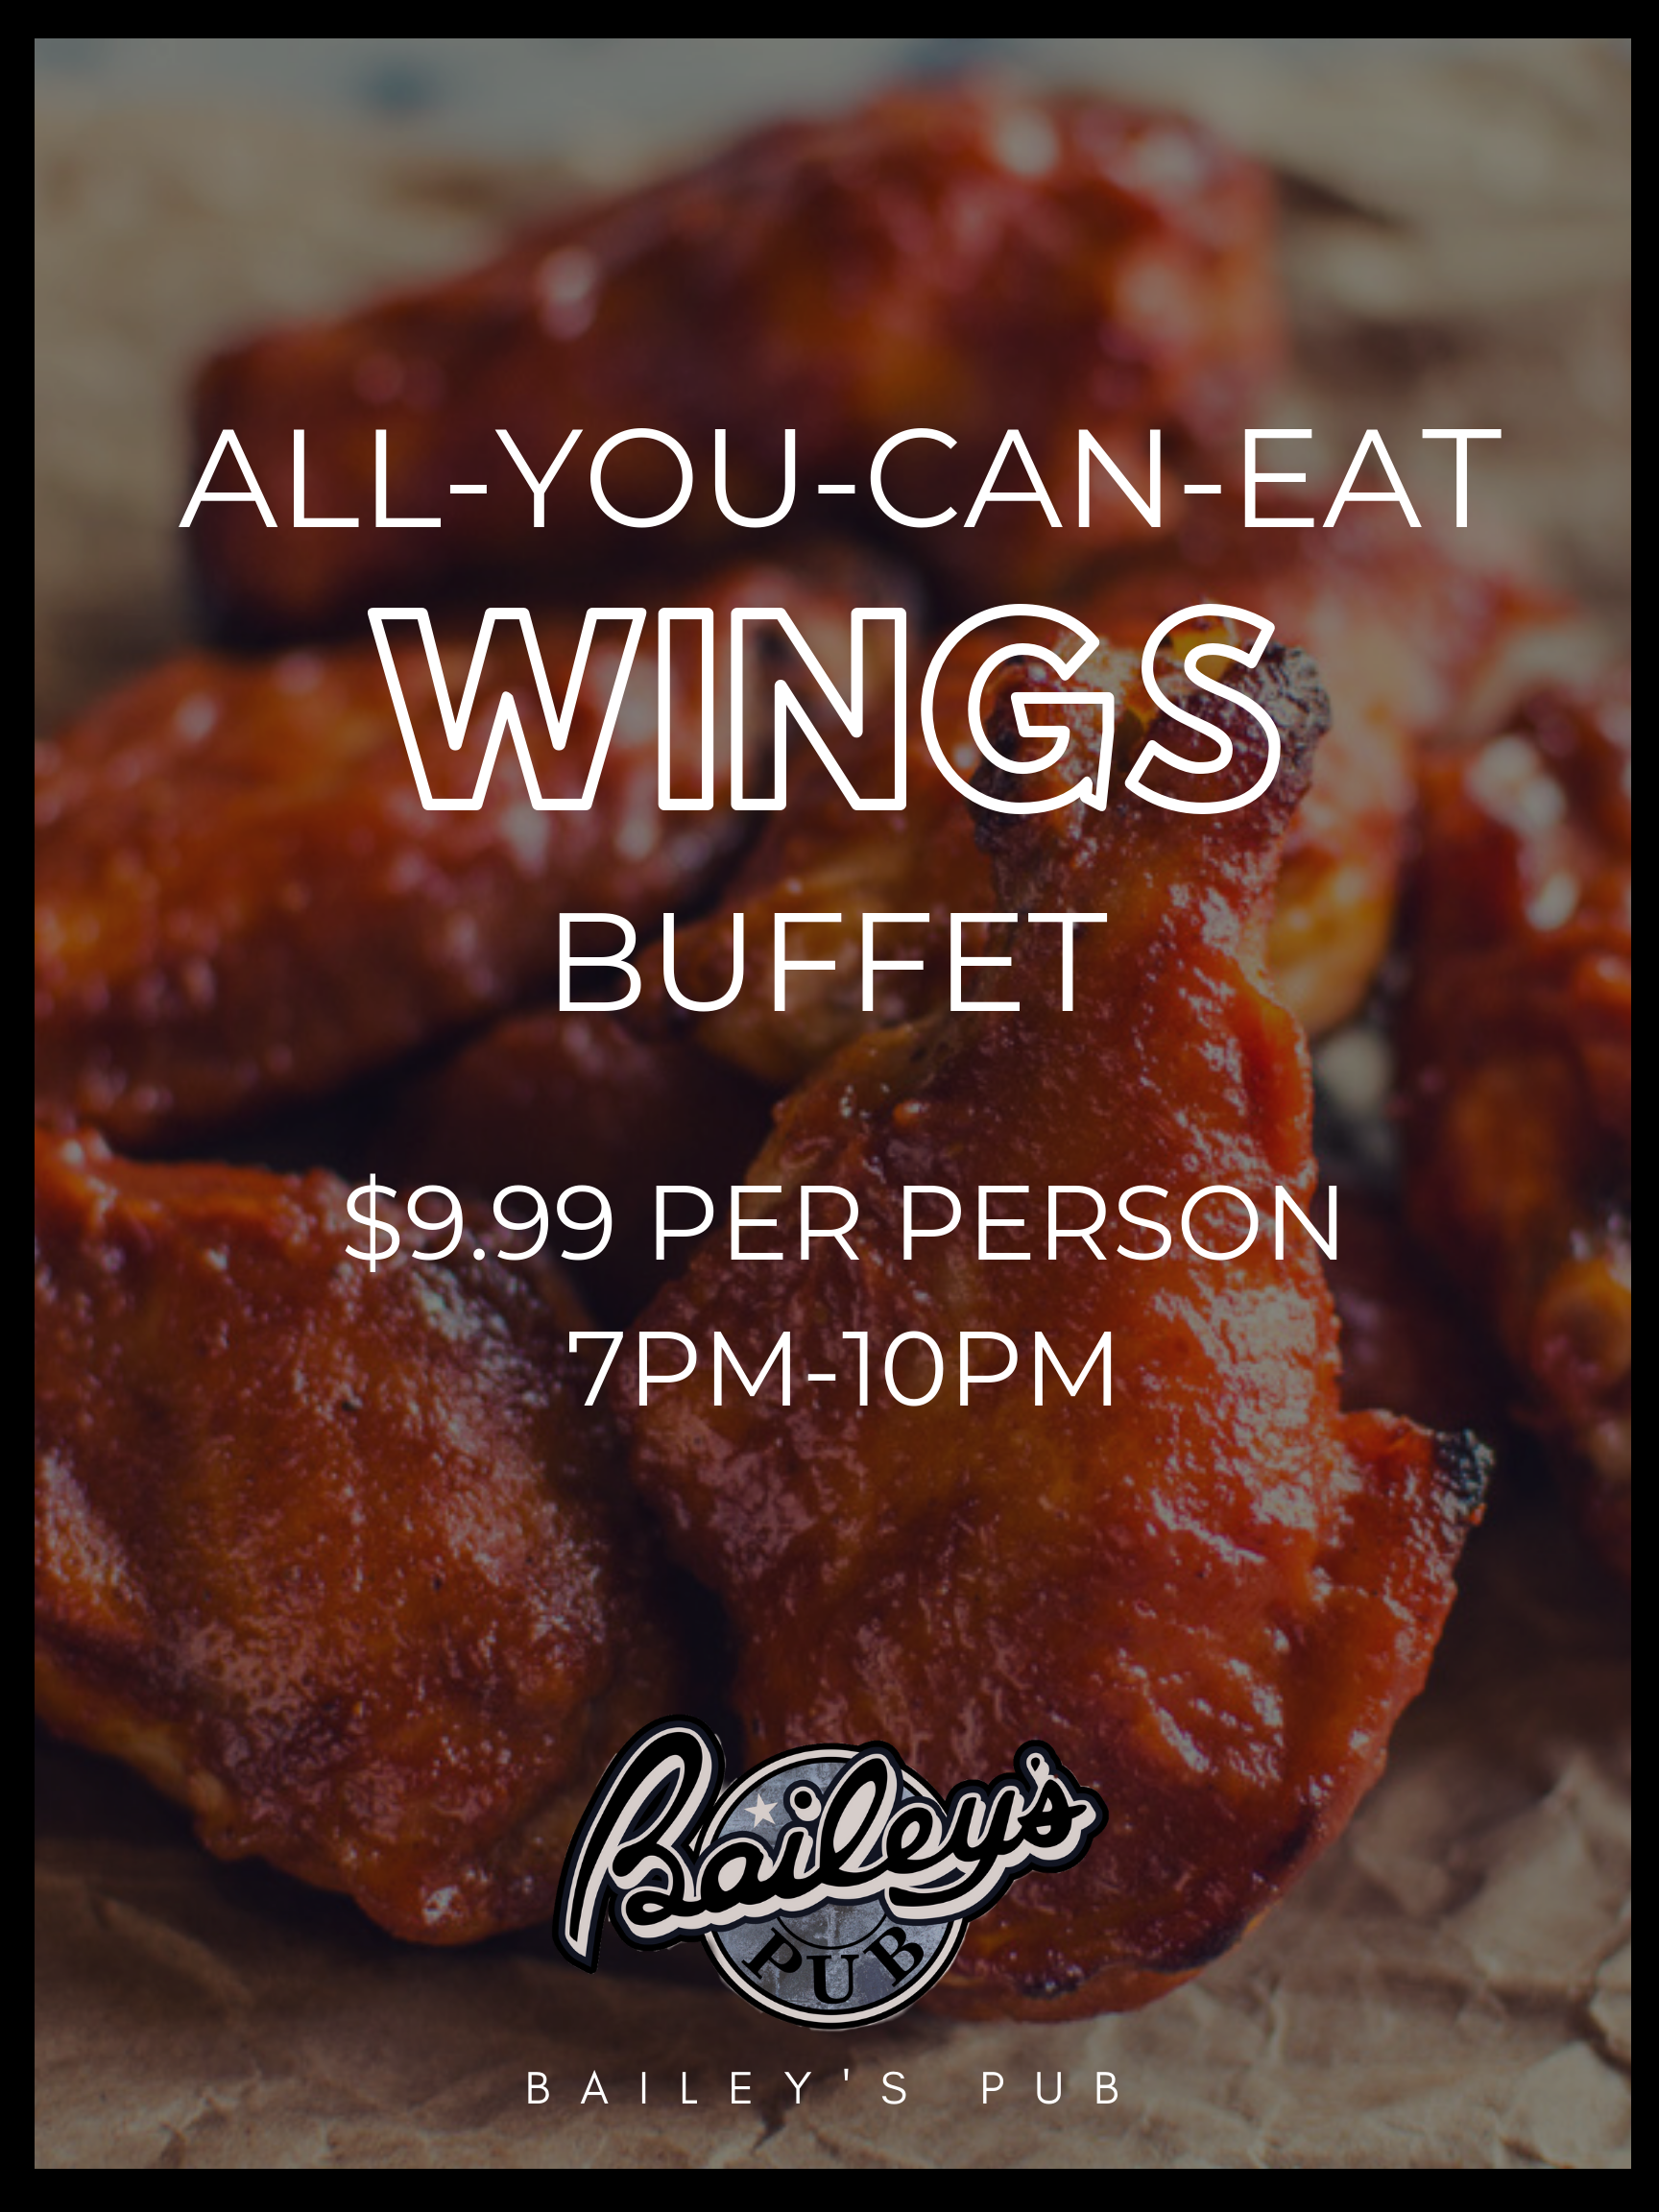 All-You-Can-Eat Wings (1)